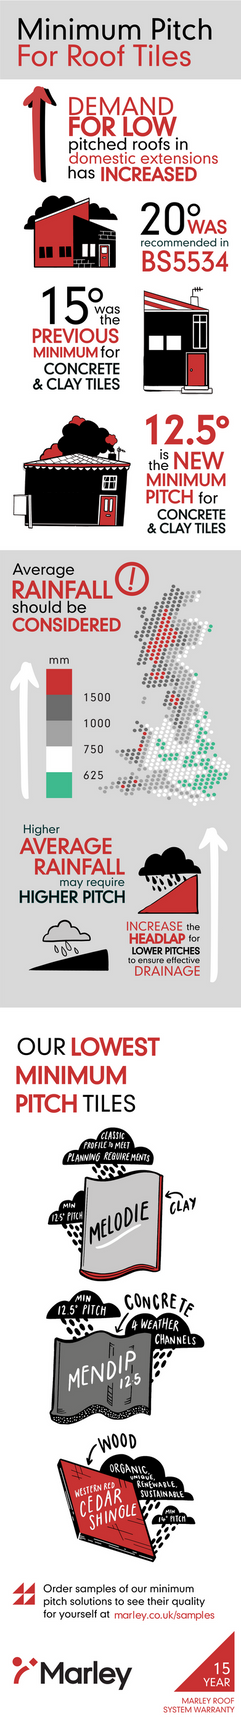 Marley Minimum Pitch Infographic new 150